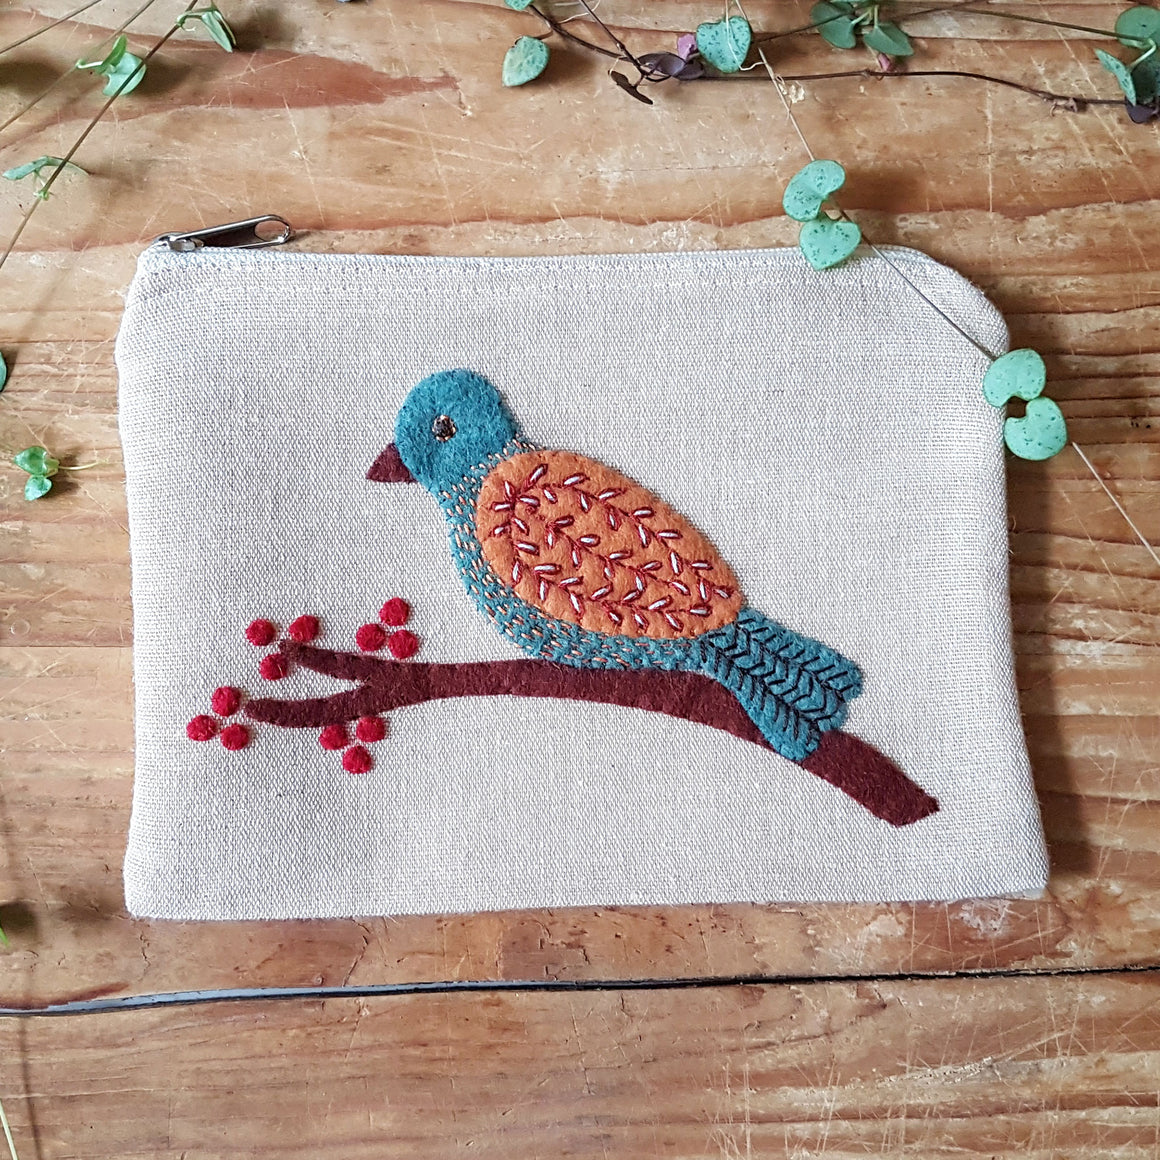 Past Subscription Box May 2020 - Spring Bird Pouch